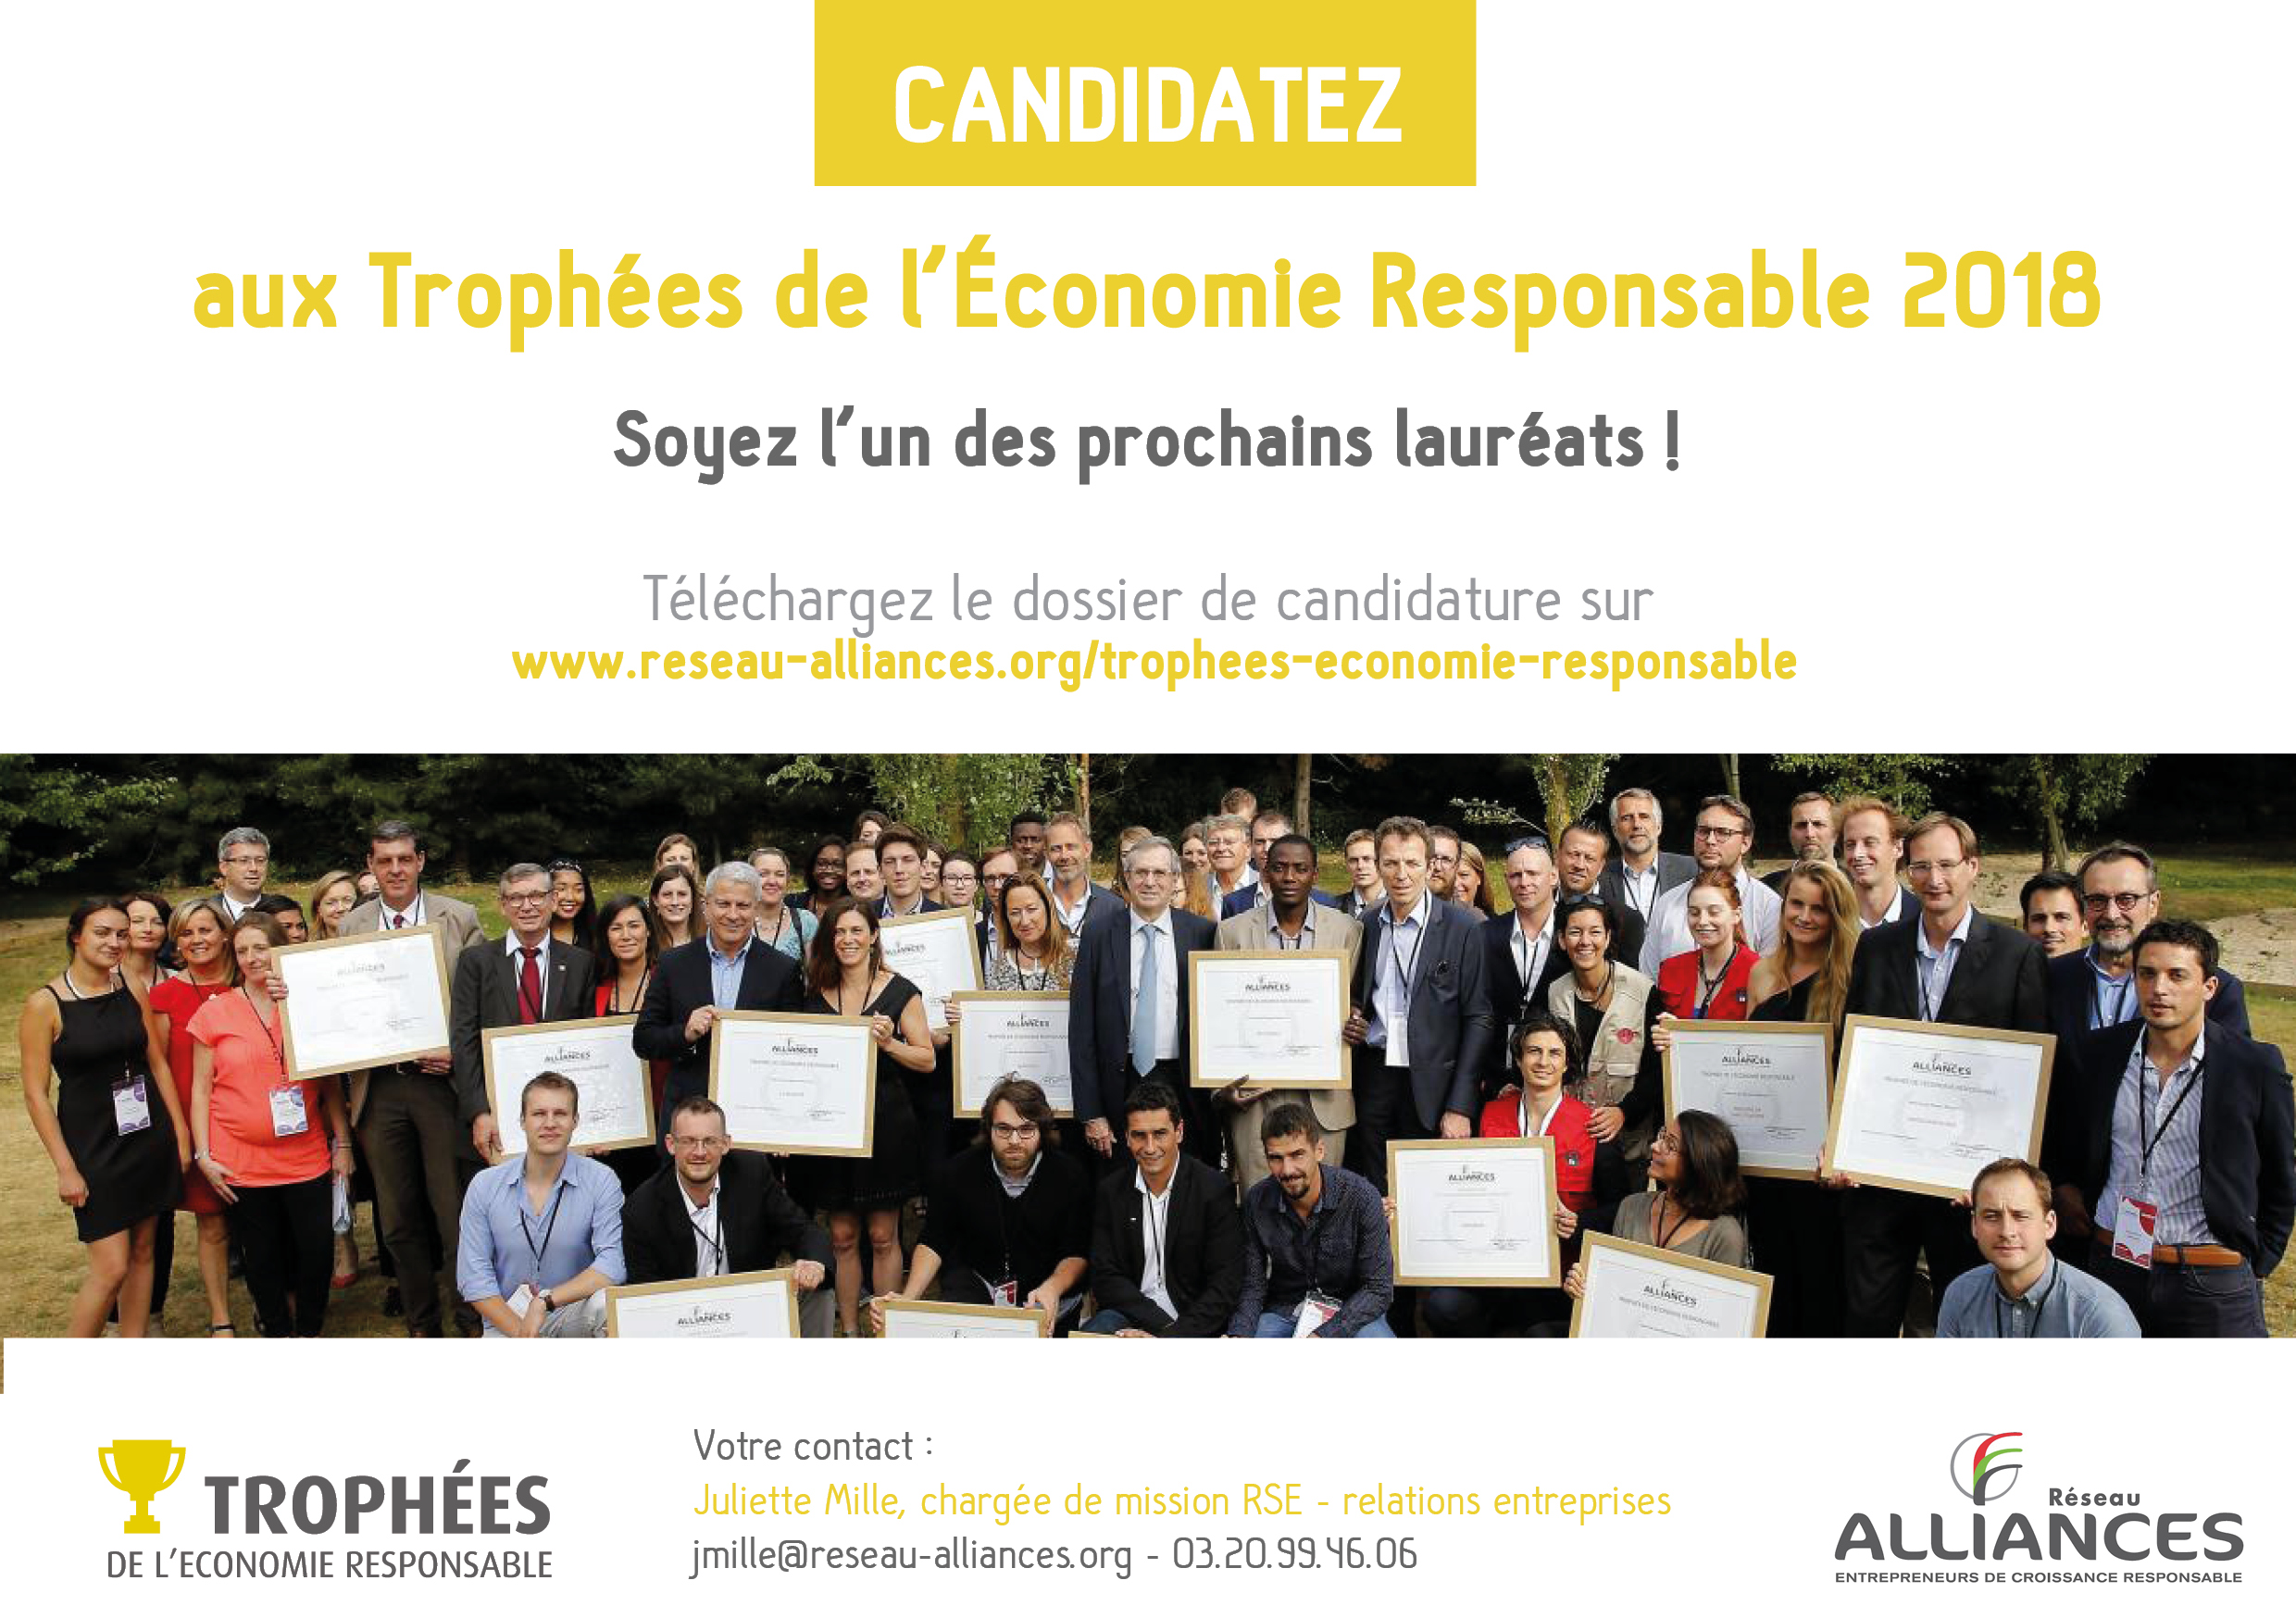 trophees 2018 candidature